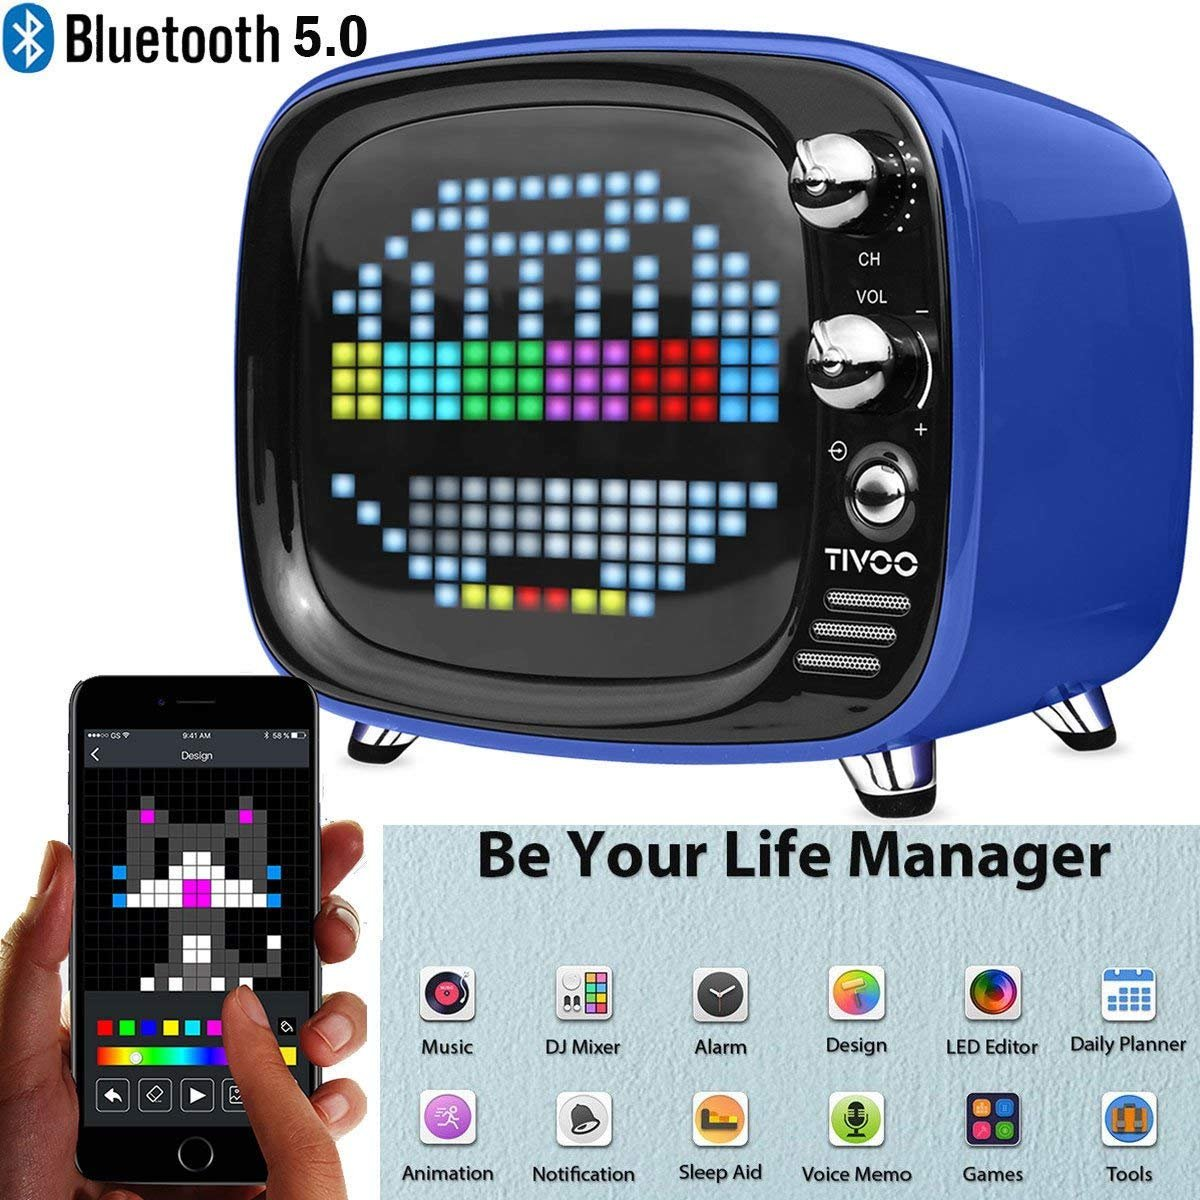 Pixel Art Bluetooth Speaker - AICase Tivoo Timebox Retro Pixel Smart Art DIY Box. Full RGB Programmable LED by APP Control,Sleep-aid Alarm Clock Pixel Art Creation Animation Bluetooth Speaker (Green)